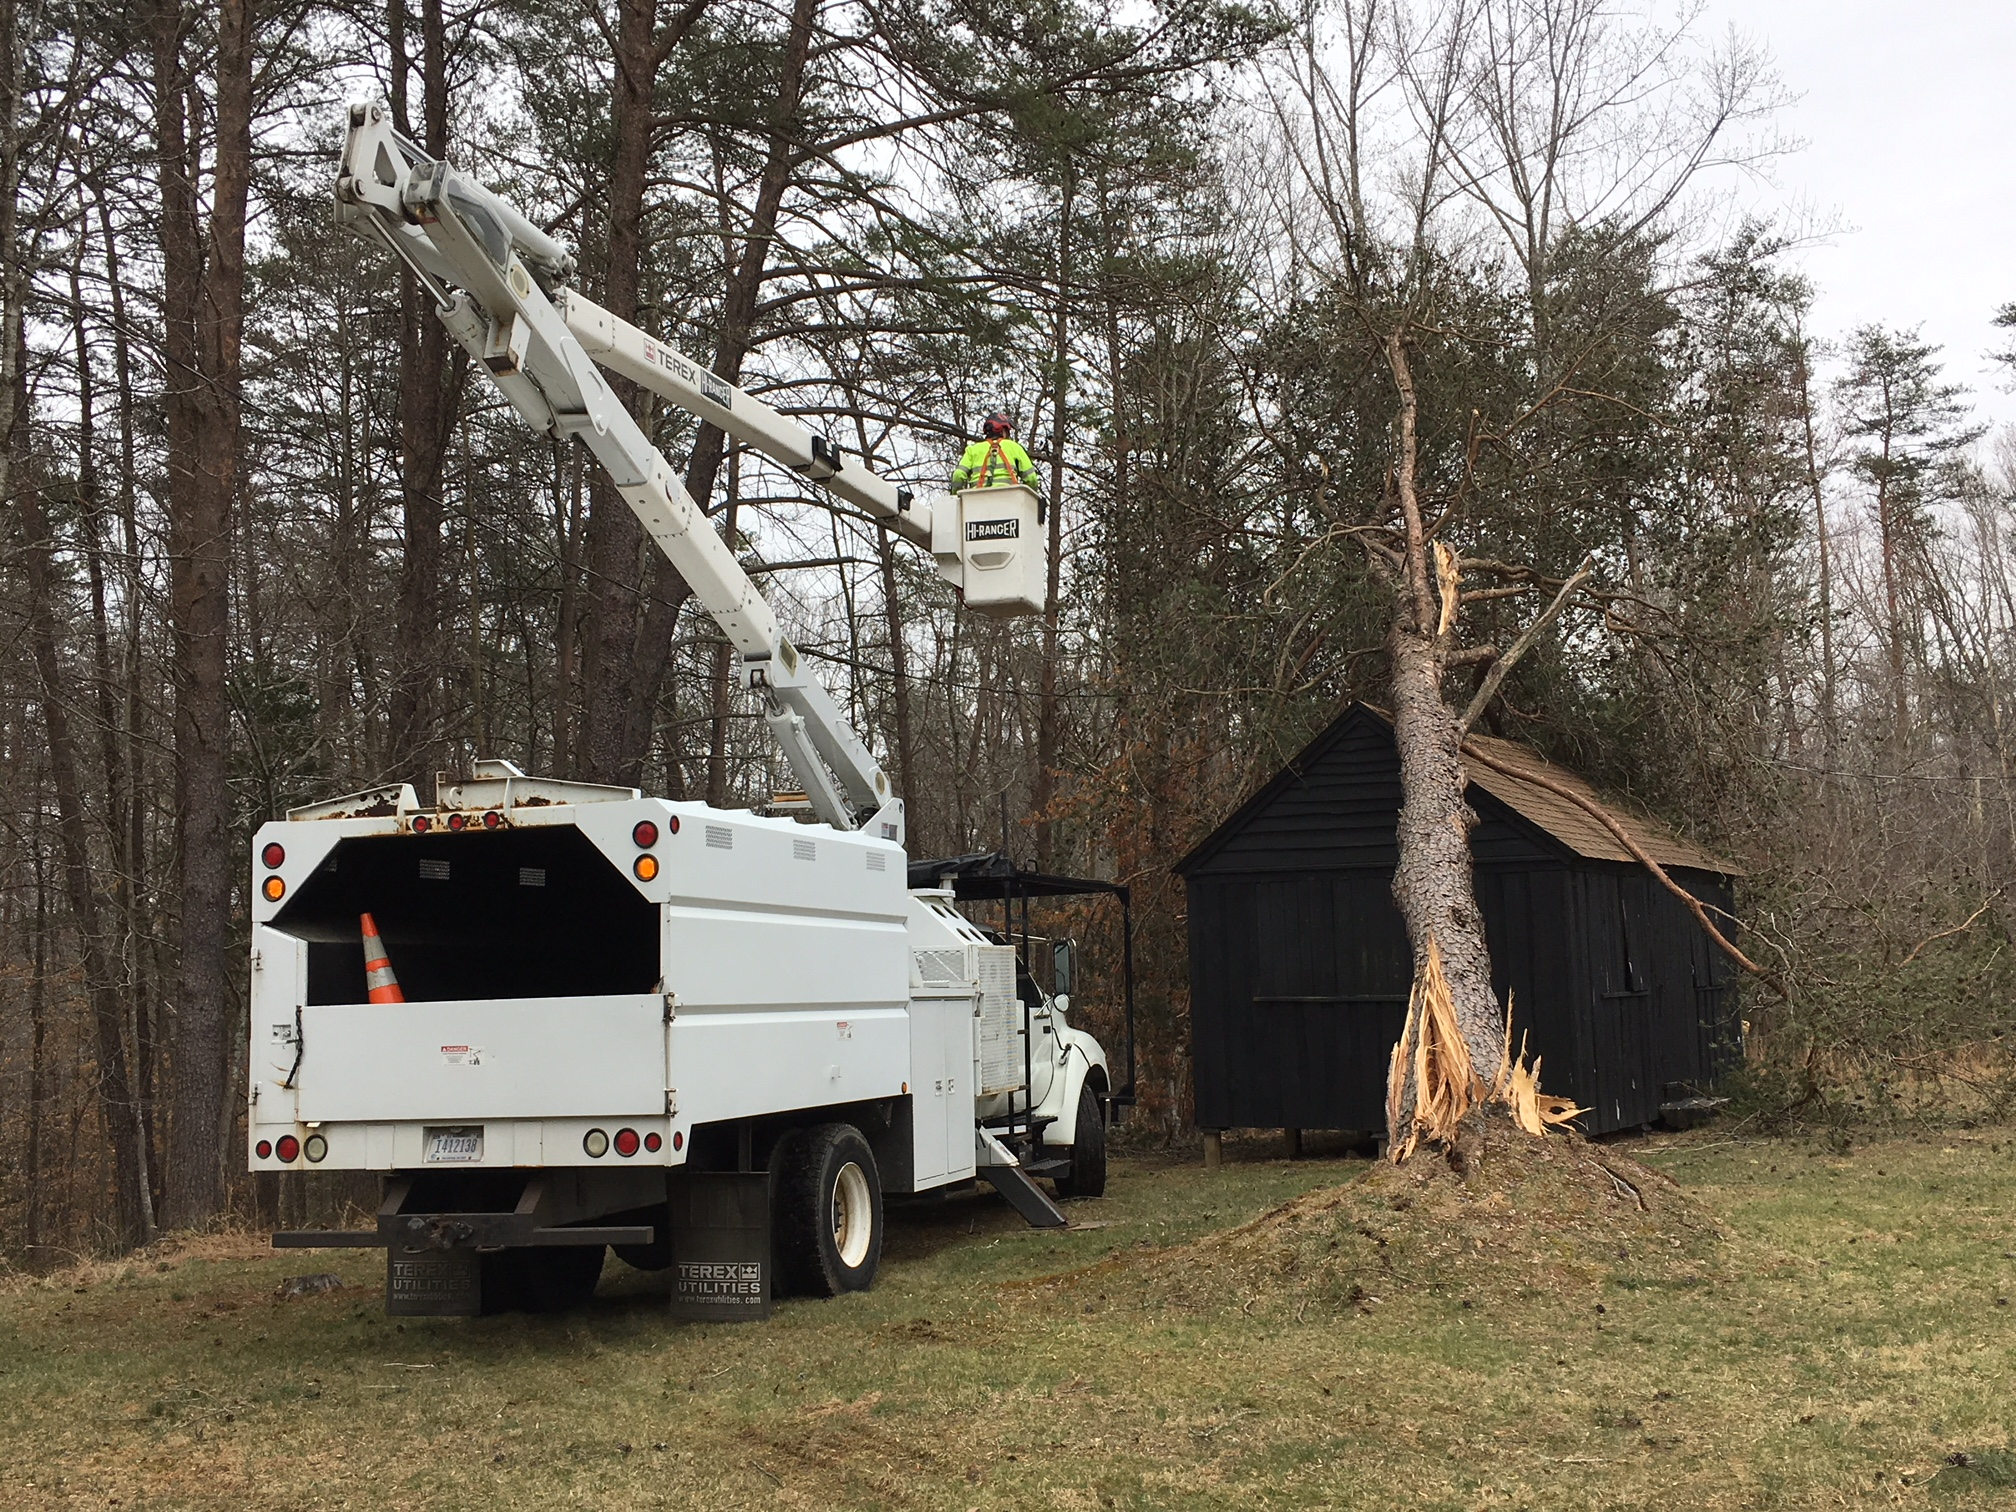 Crew from Rock Creek Park helps remove fallen tree from historic cabin.